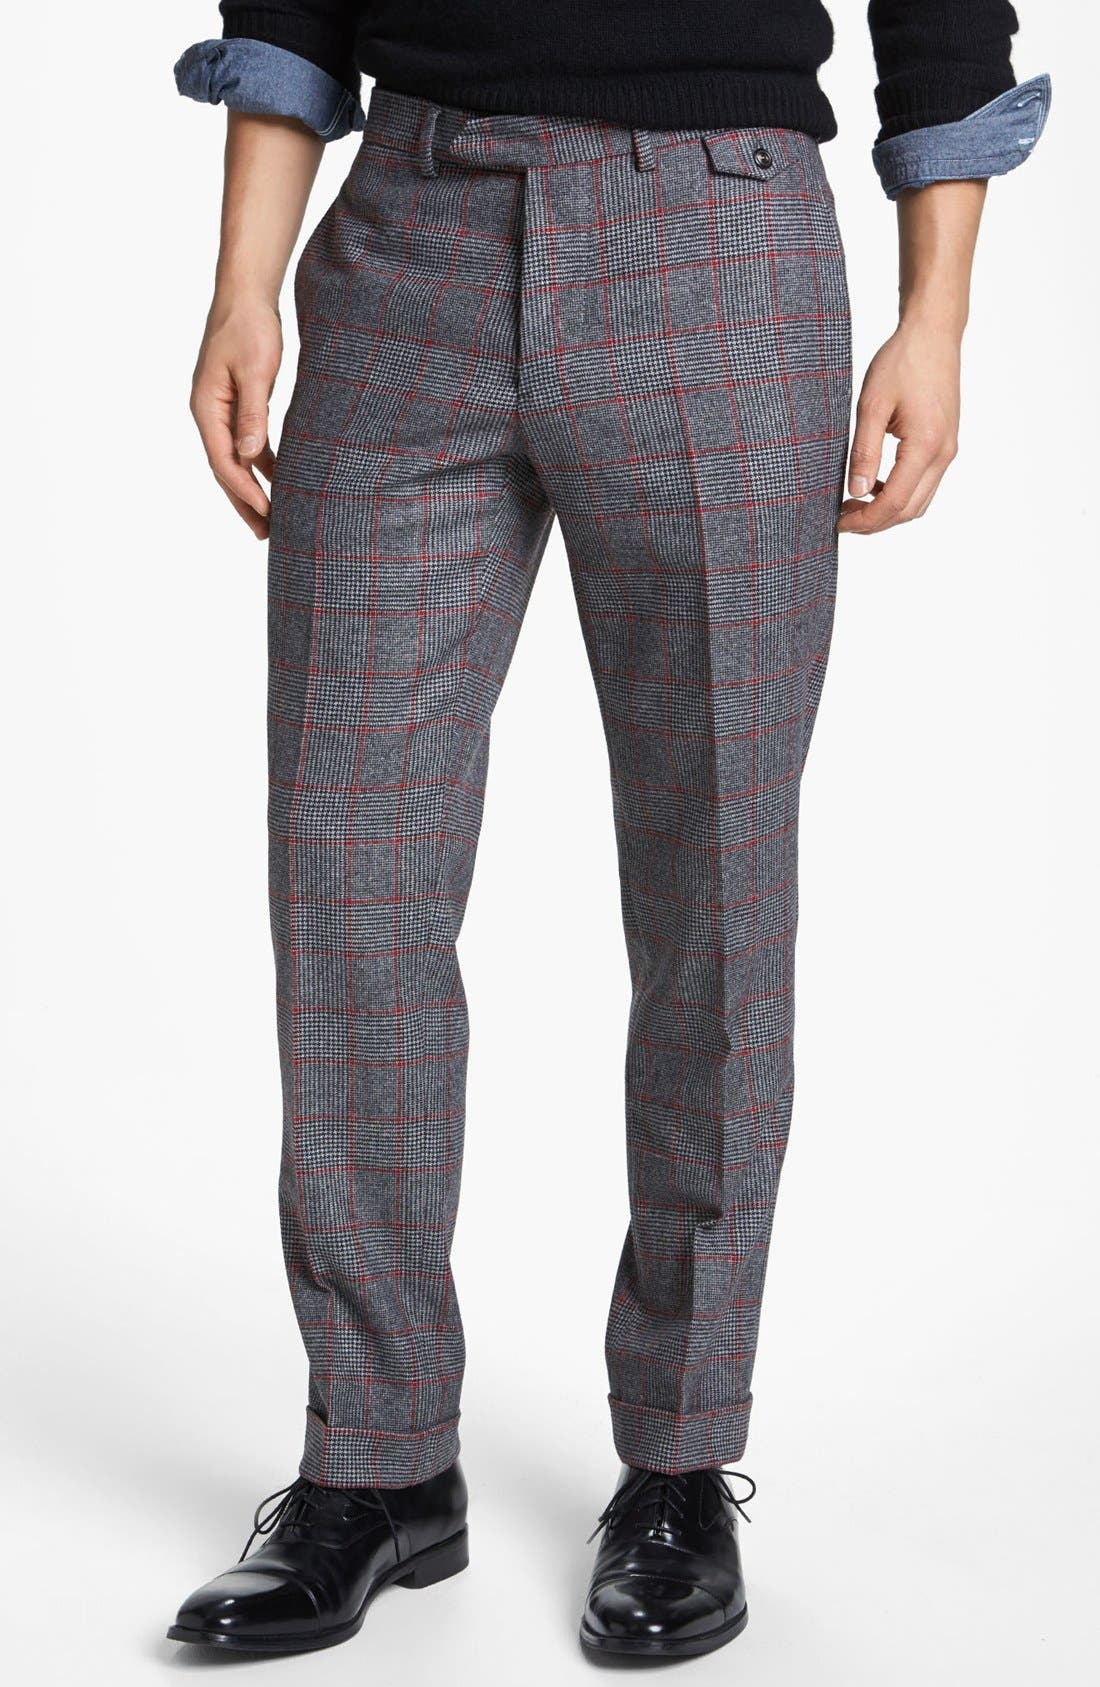 MICHAEL BASTIAN Skinny Fit Glen Plaid Pants, Main, color, 023